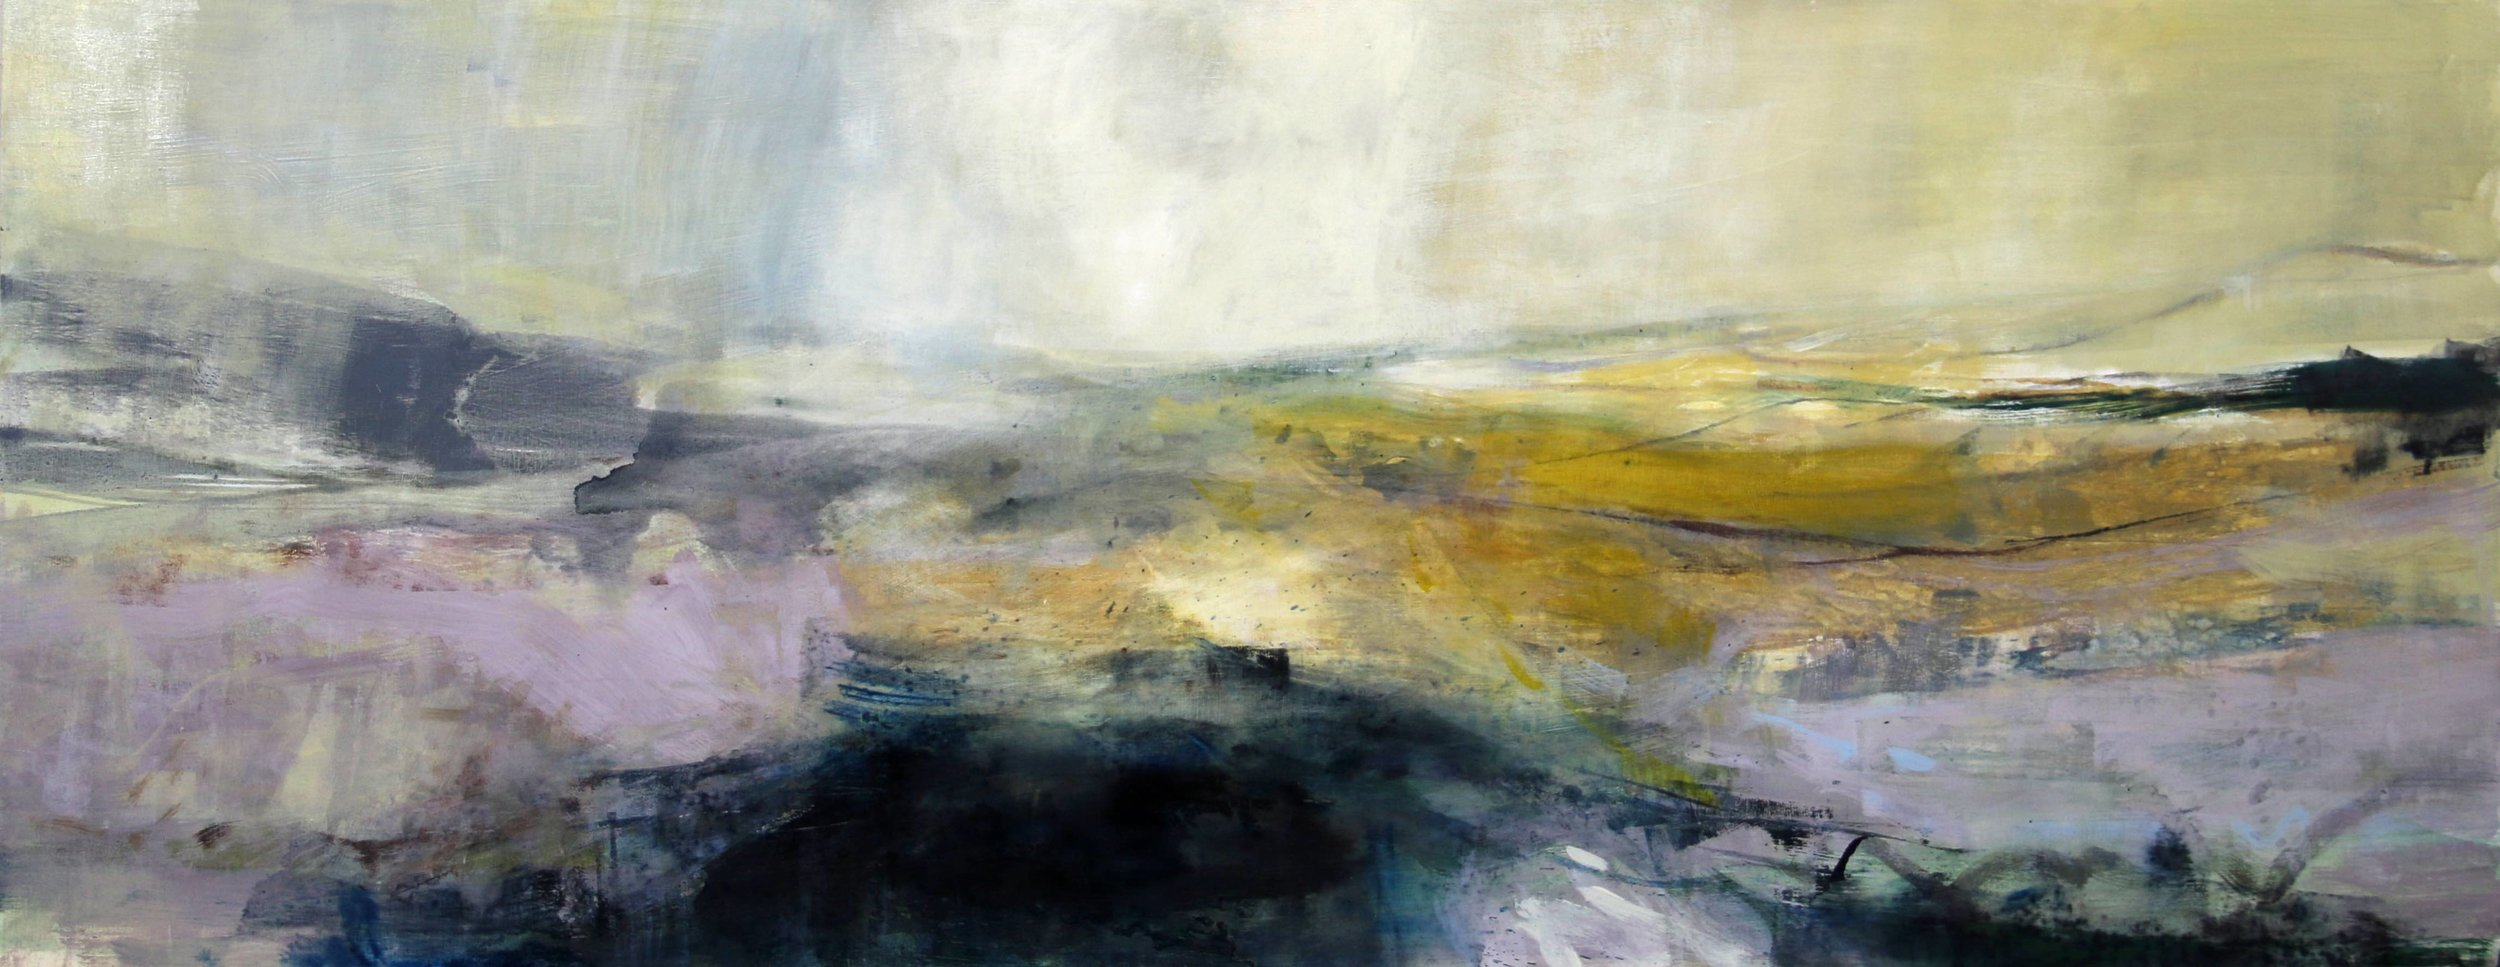 Beyond the Sun • Oil on Board • 48x122cm • Sold